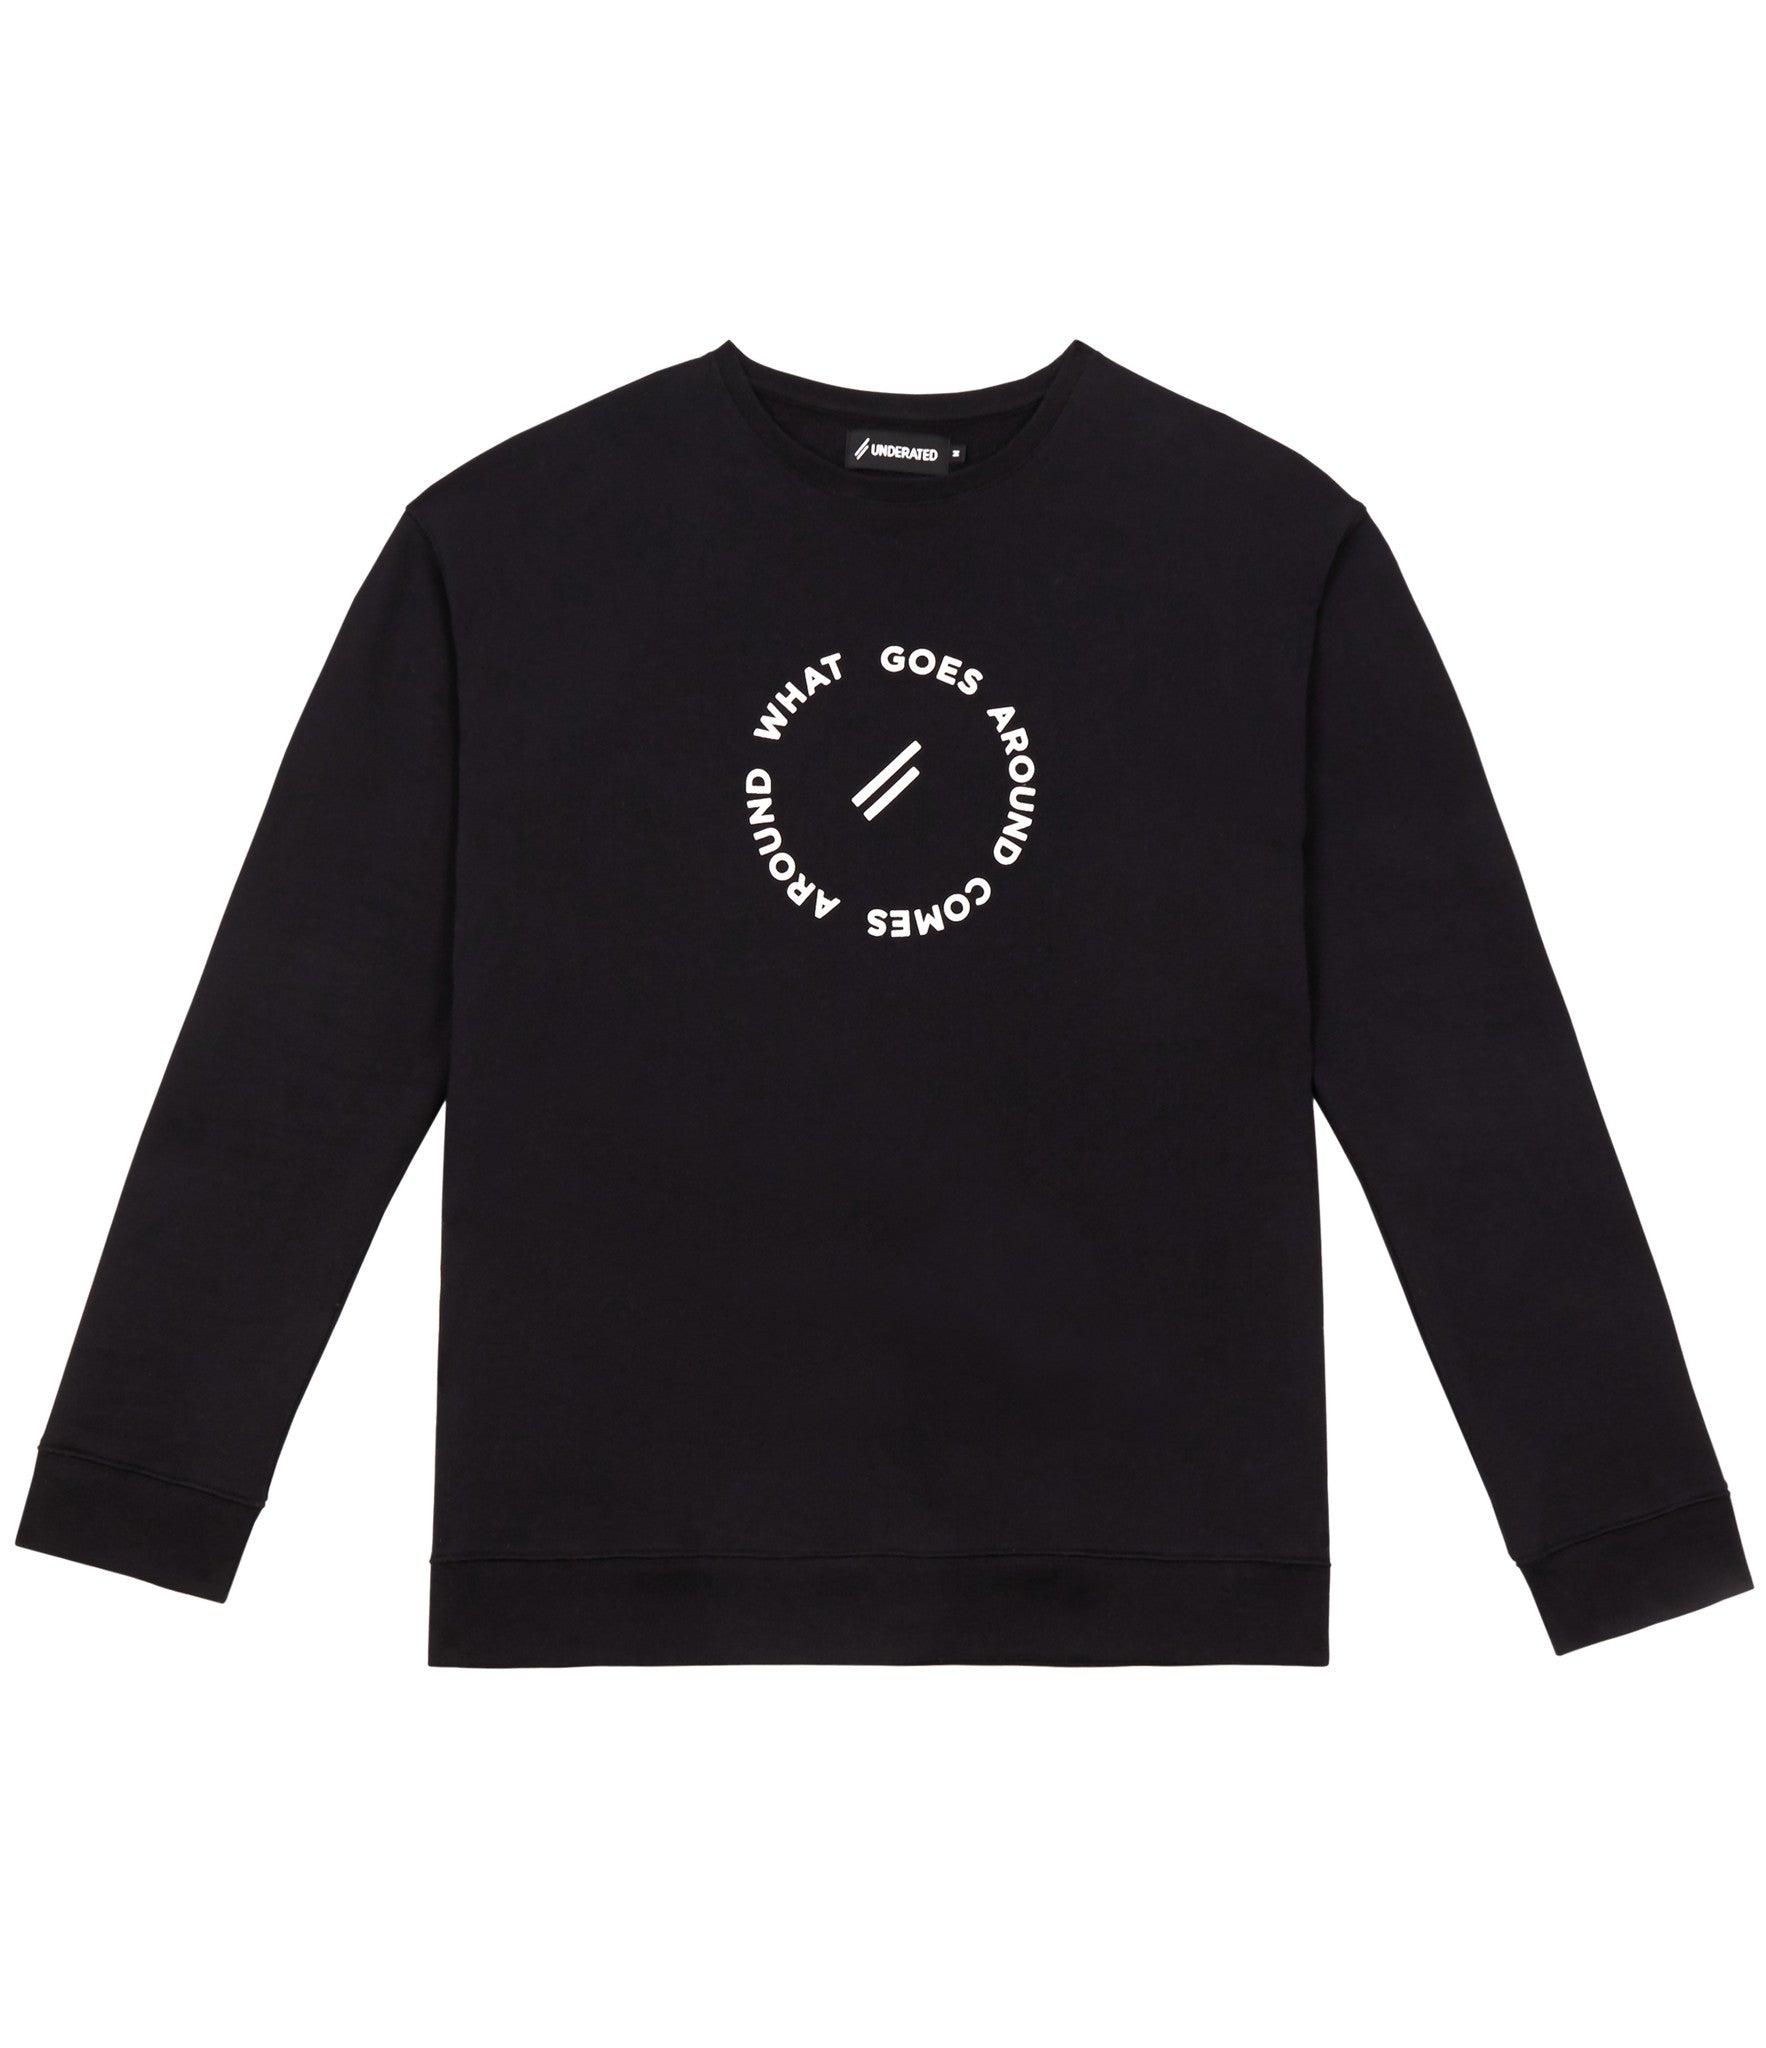 SW315 Circle Logo Printed Sweatshirt - Black - underated london - underatedco - 1